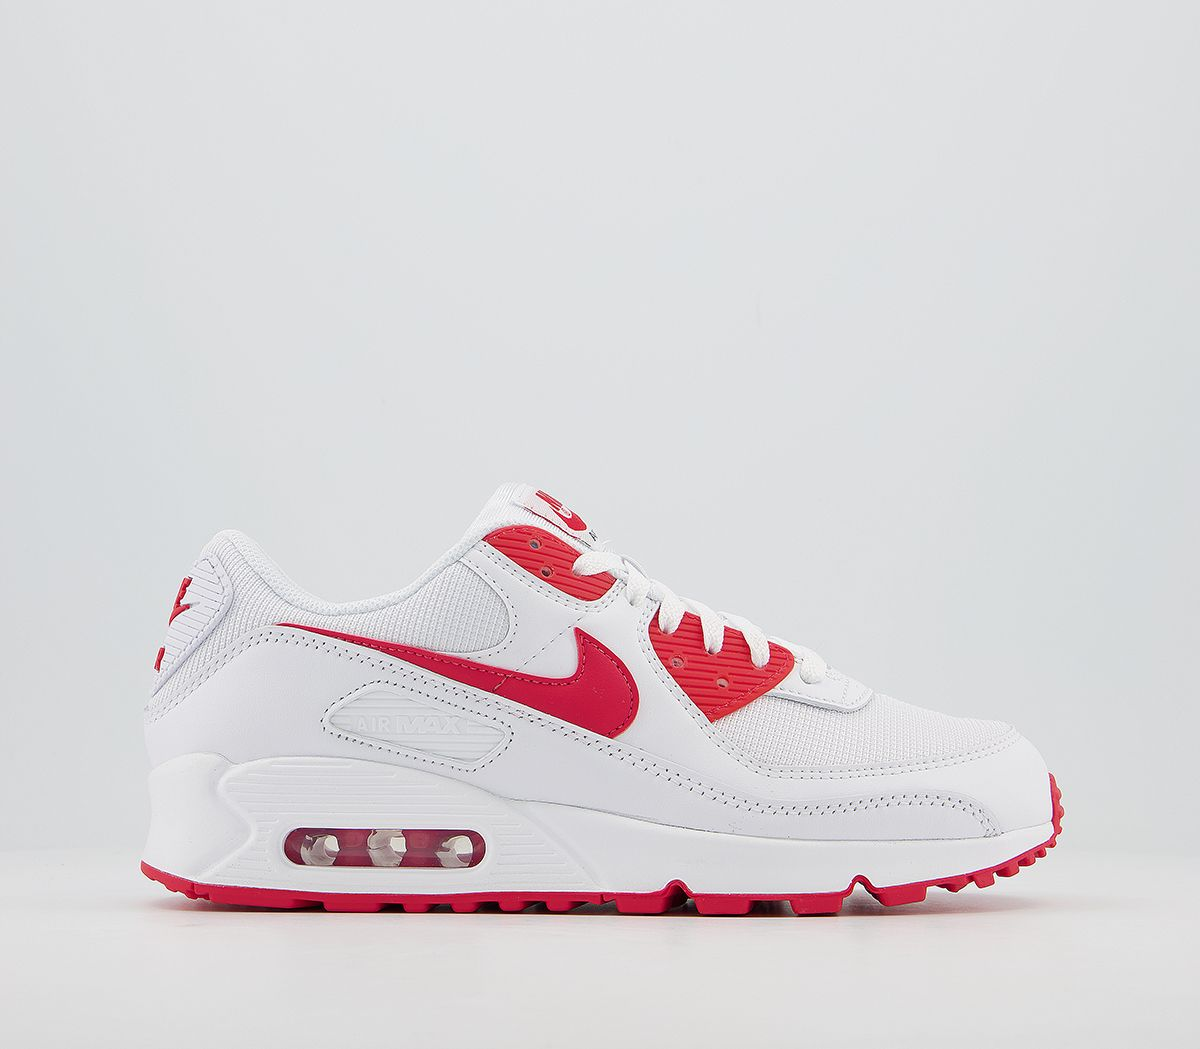 Unisex Nike Air Max 90 Trainers Trainers White Hyper Red Black 2021915334